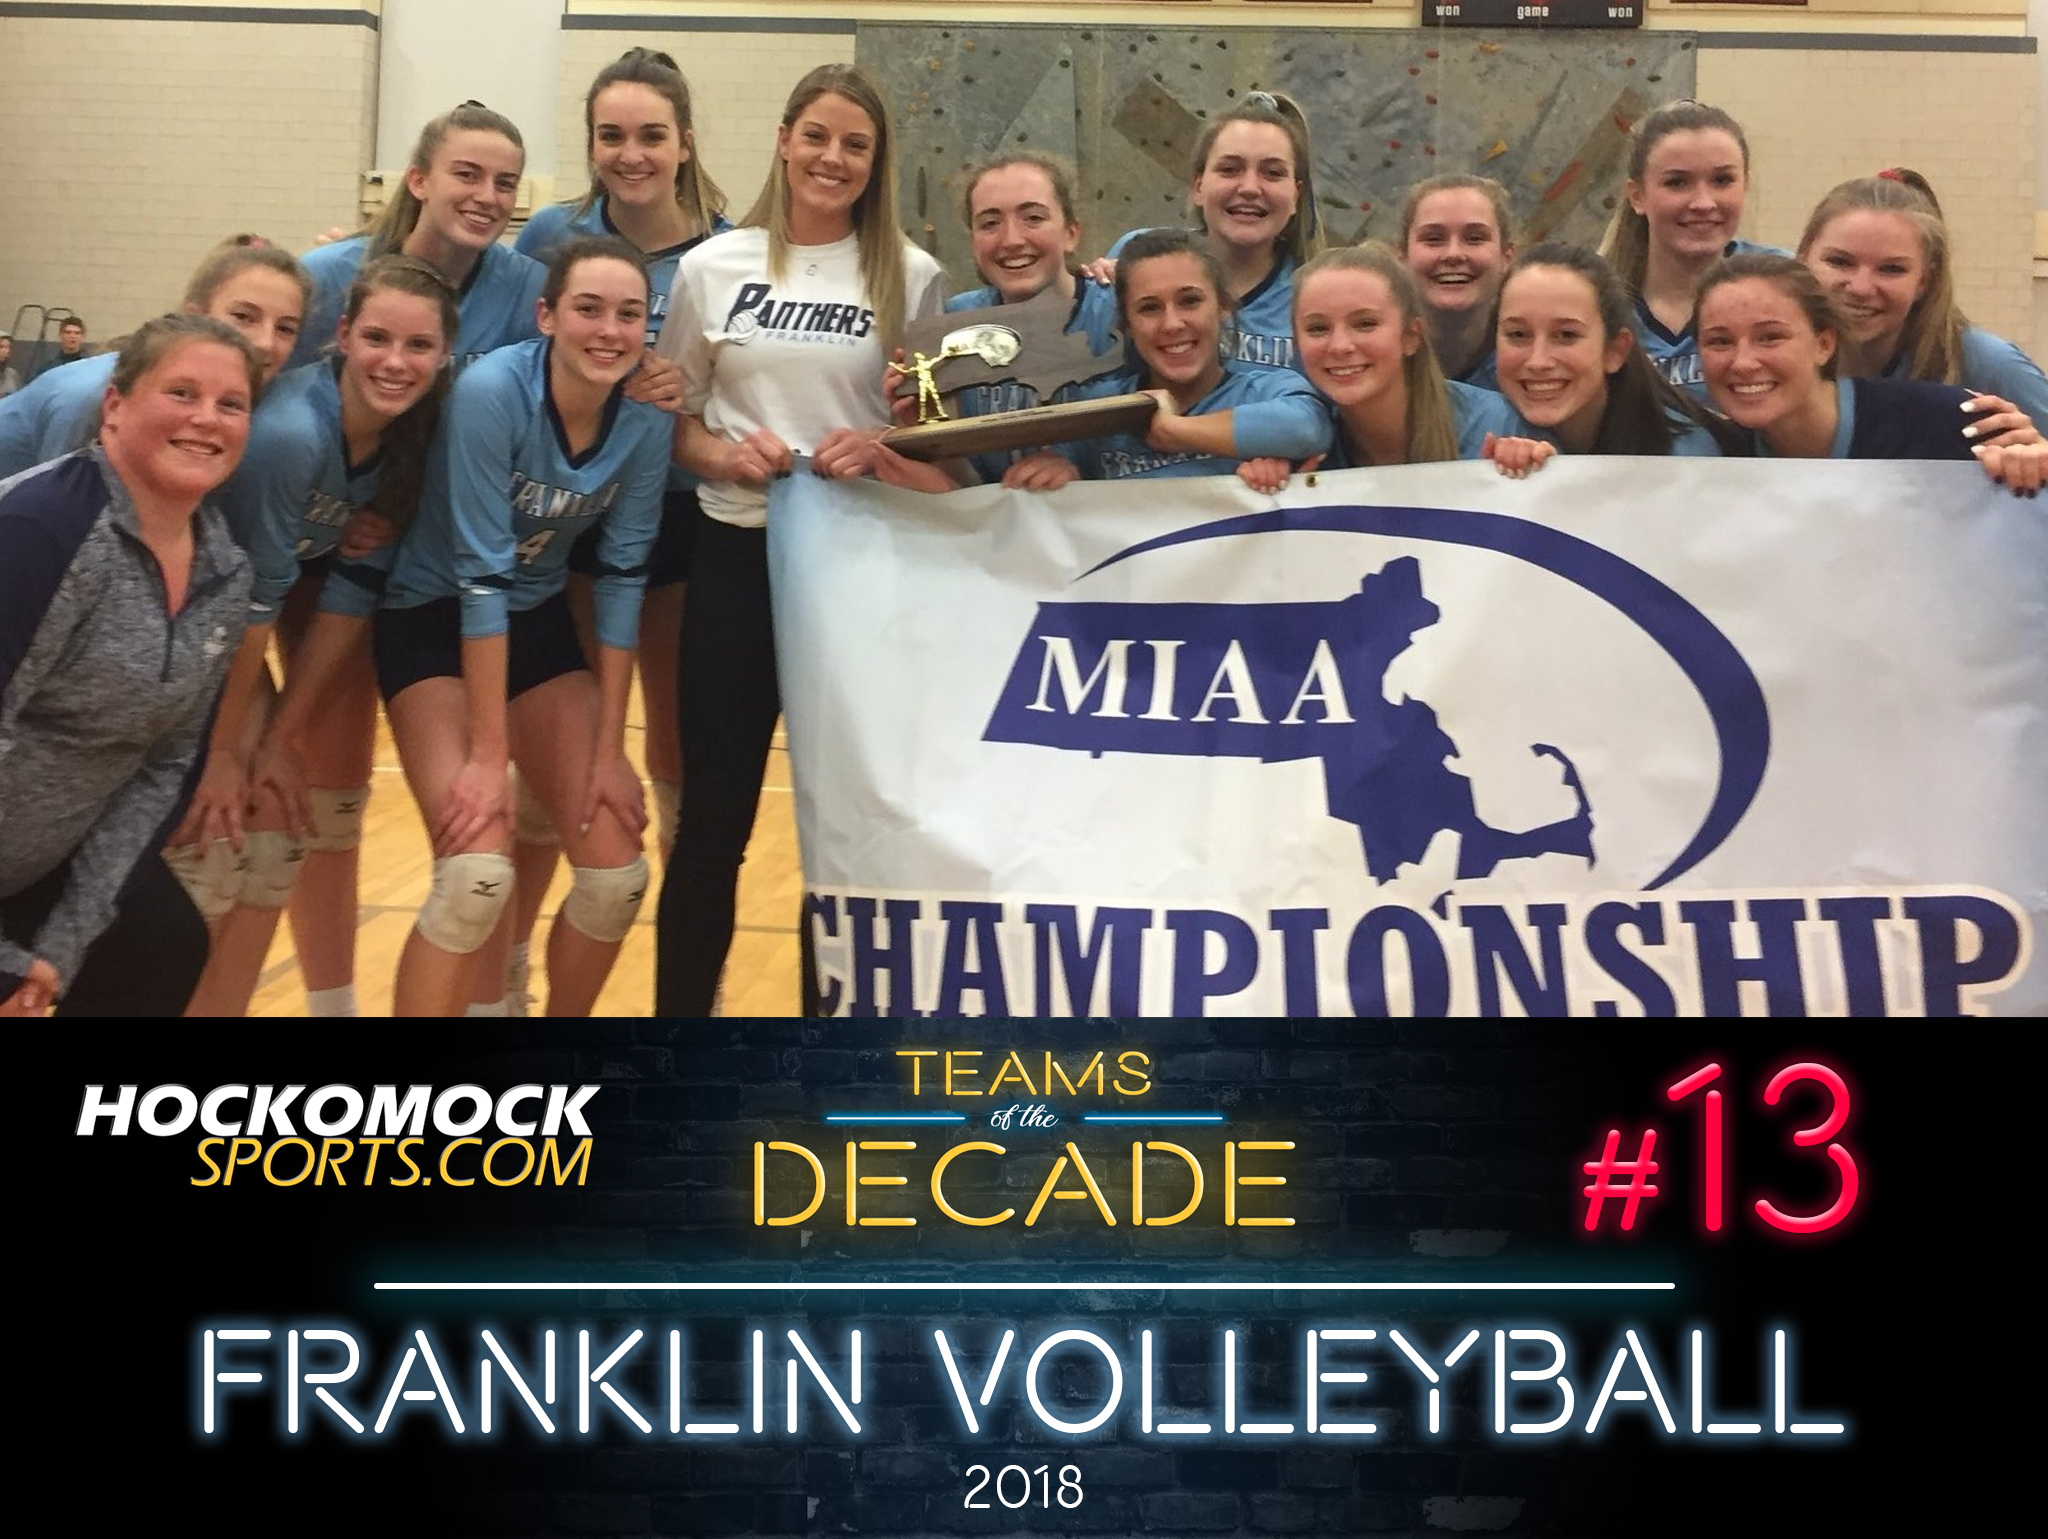 Franklin volleyball